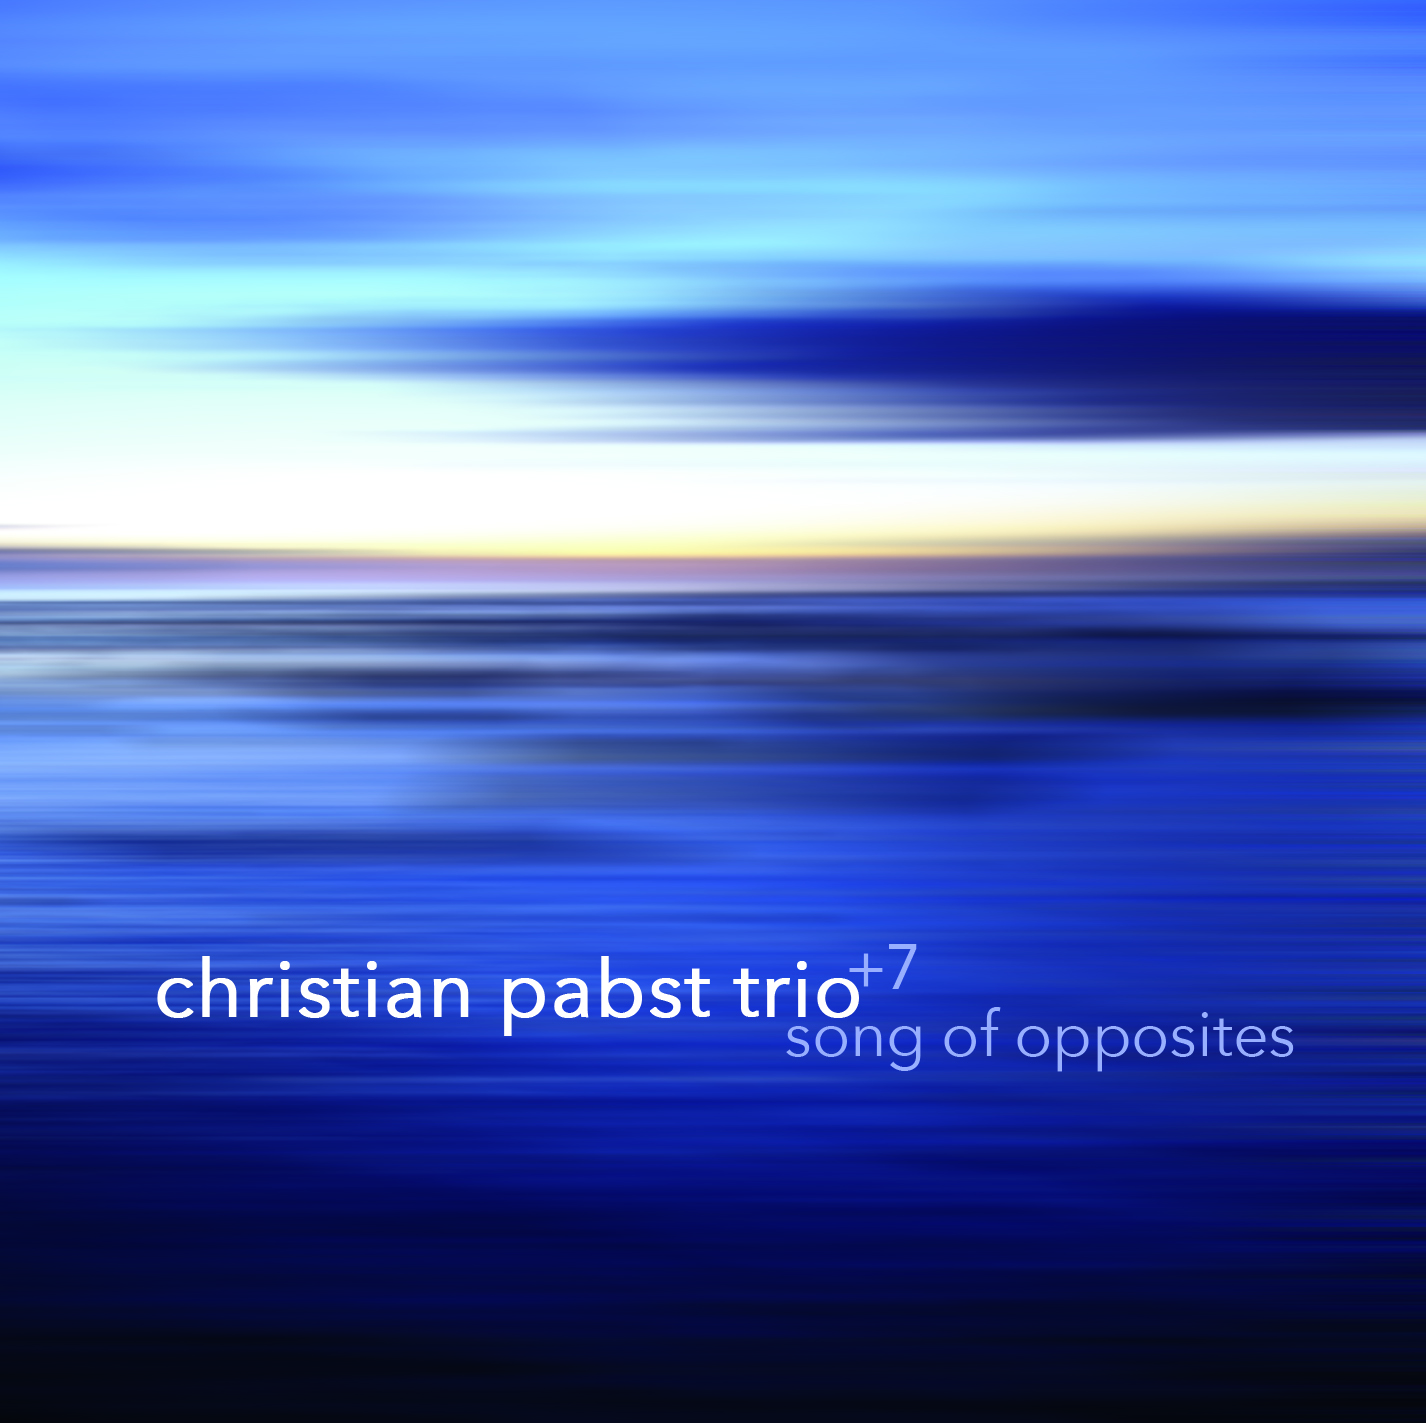 Christian Pabst Song of Opposites Christian Pabst Trio